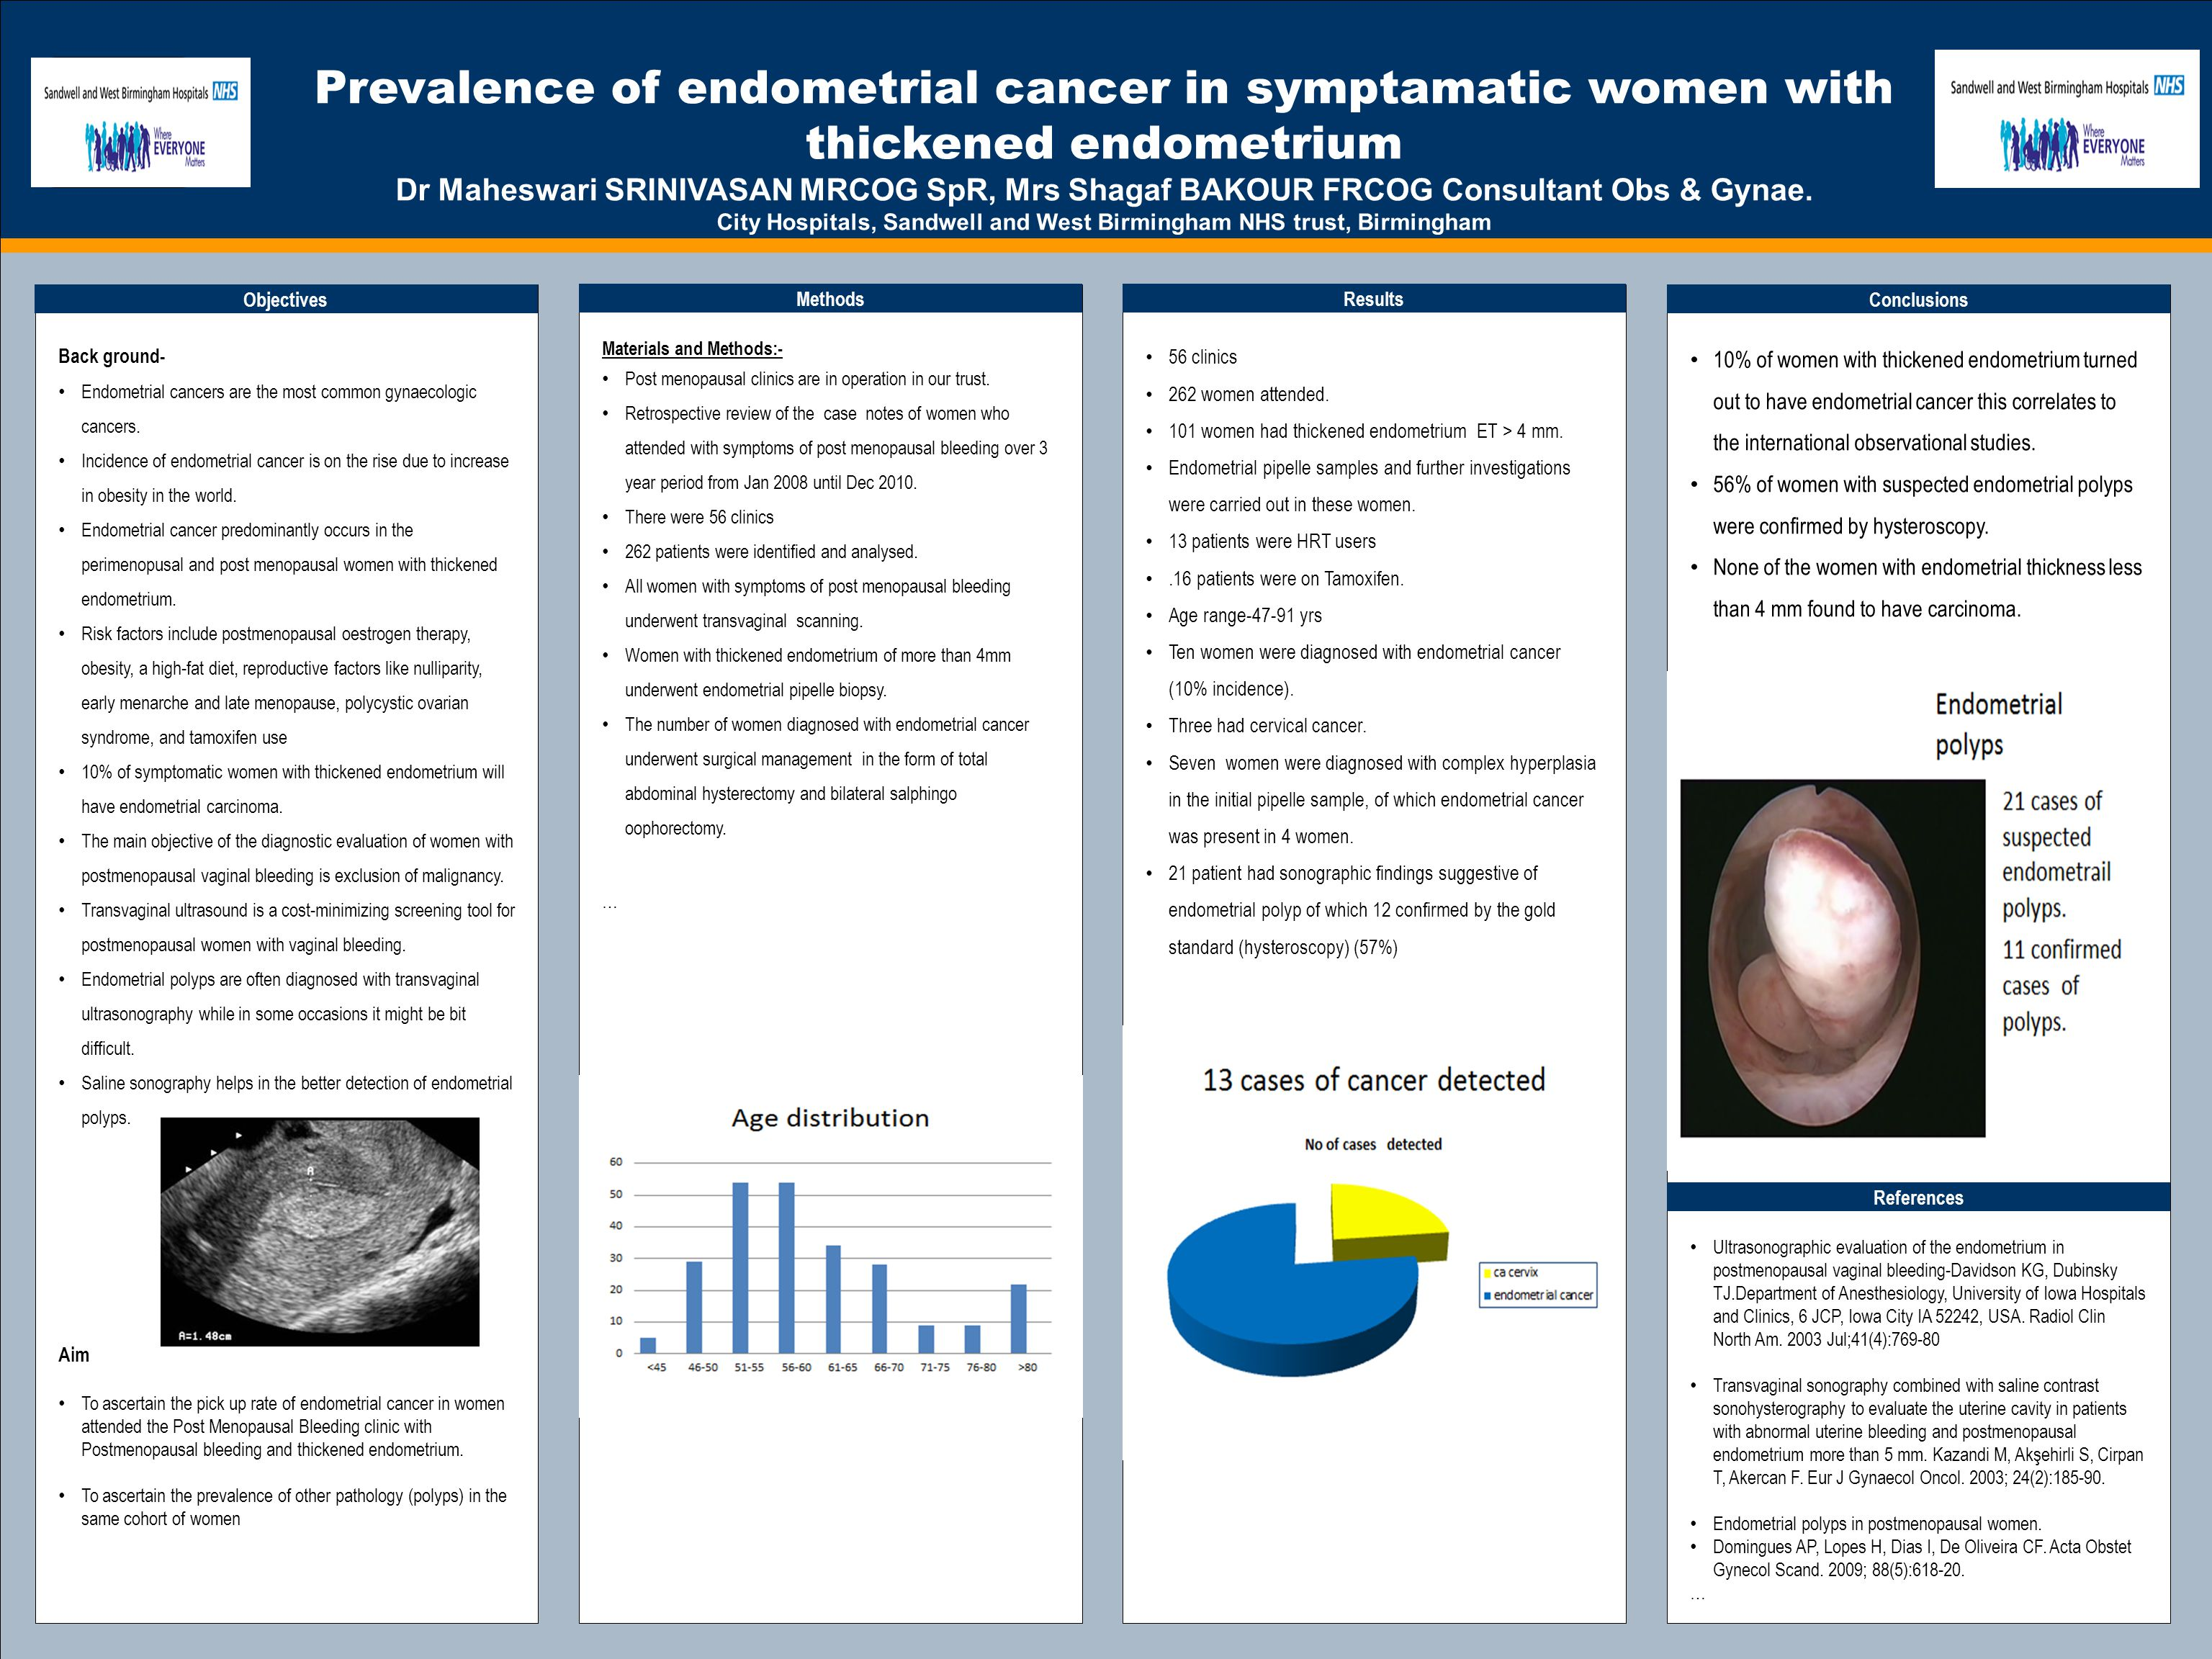 TEMPLATE DESIGN © 2008 www.PosterPresentations.com Prevalence of endometrial cancer in symptamatic women with thickened endometrium Dr Maheswari SRINI